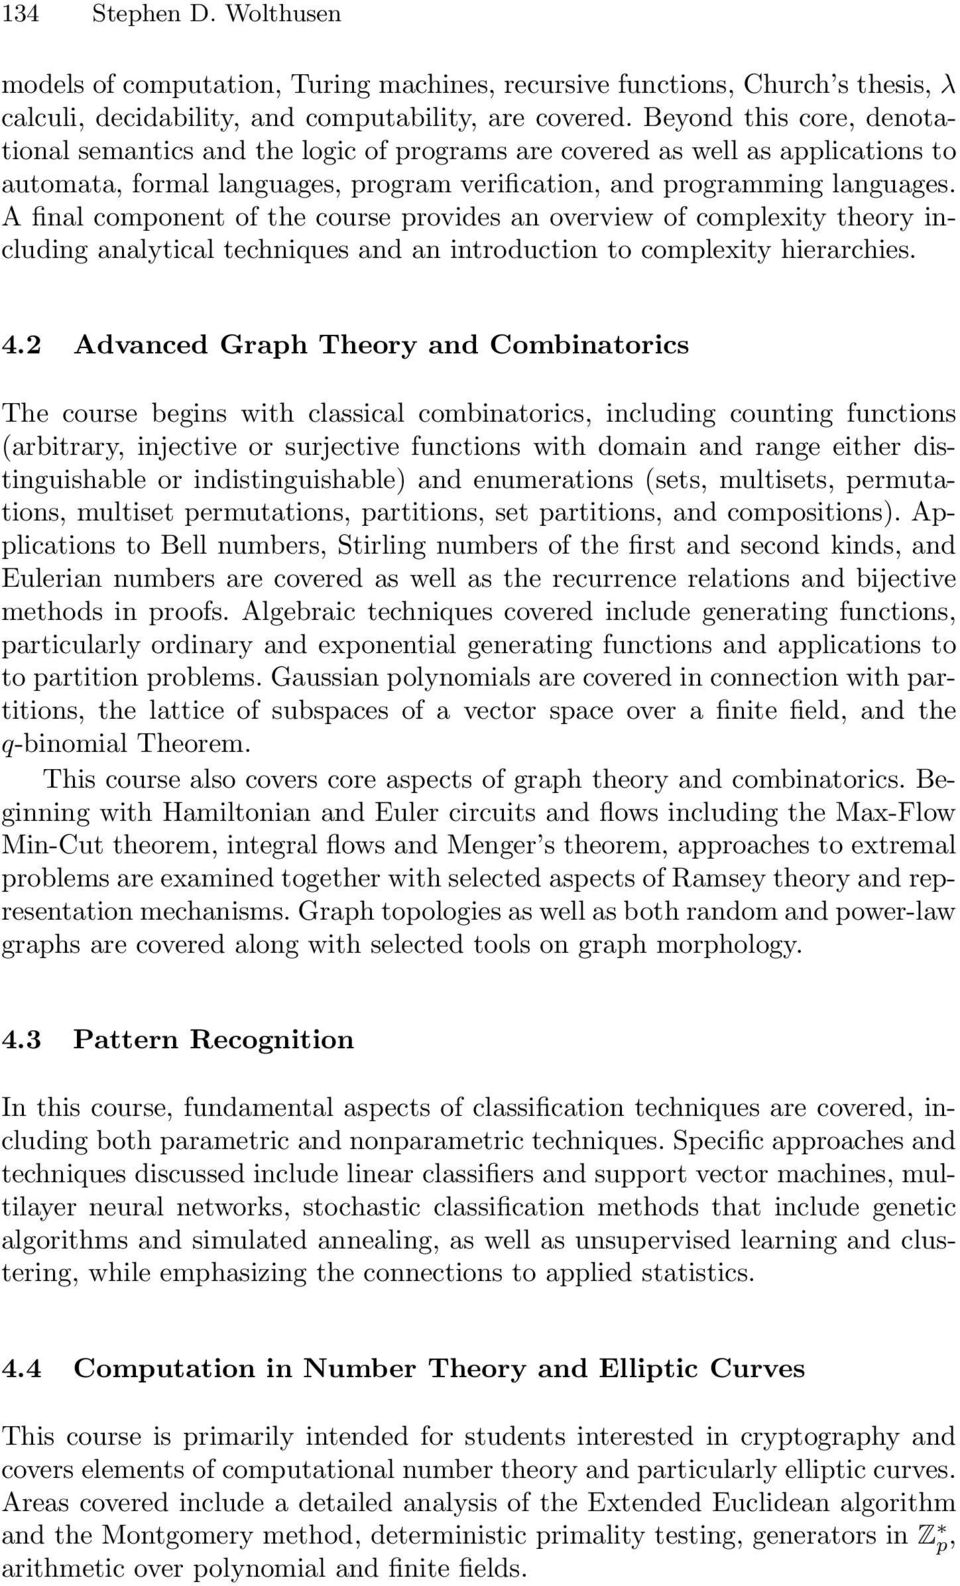 A final component of the course provides an overview of complexity theory including analytical techniques and an introduction to complexity hierarchies. 4.